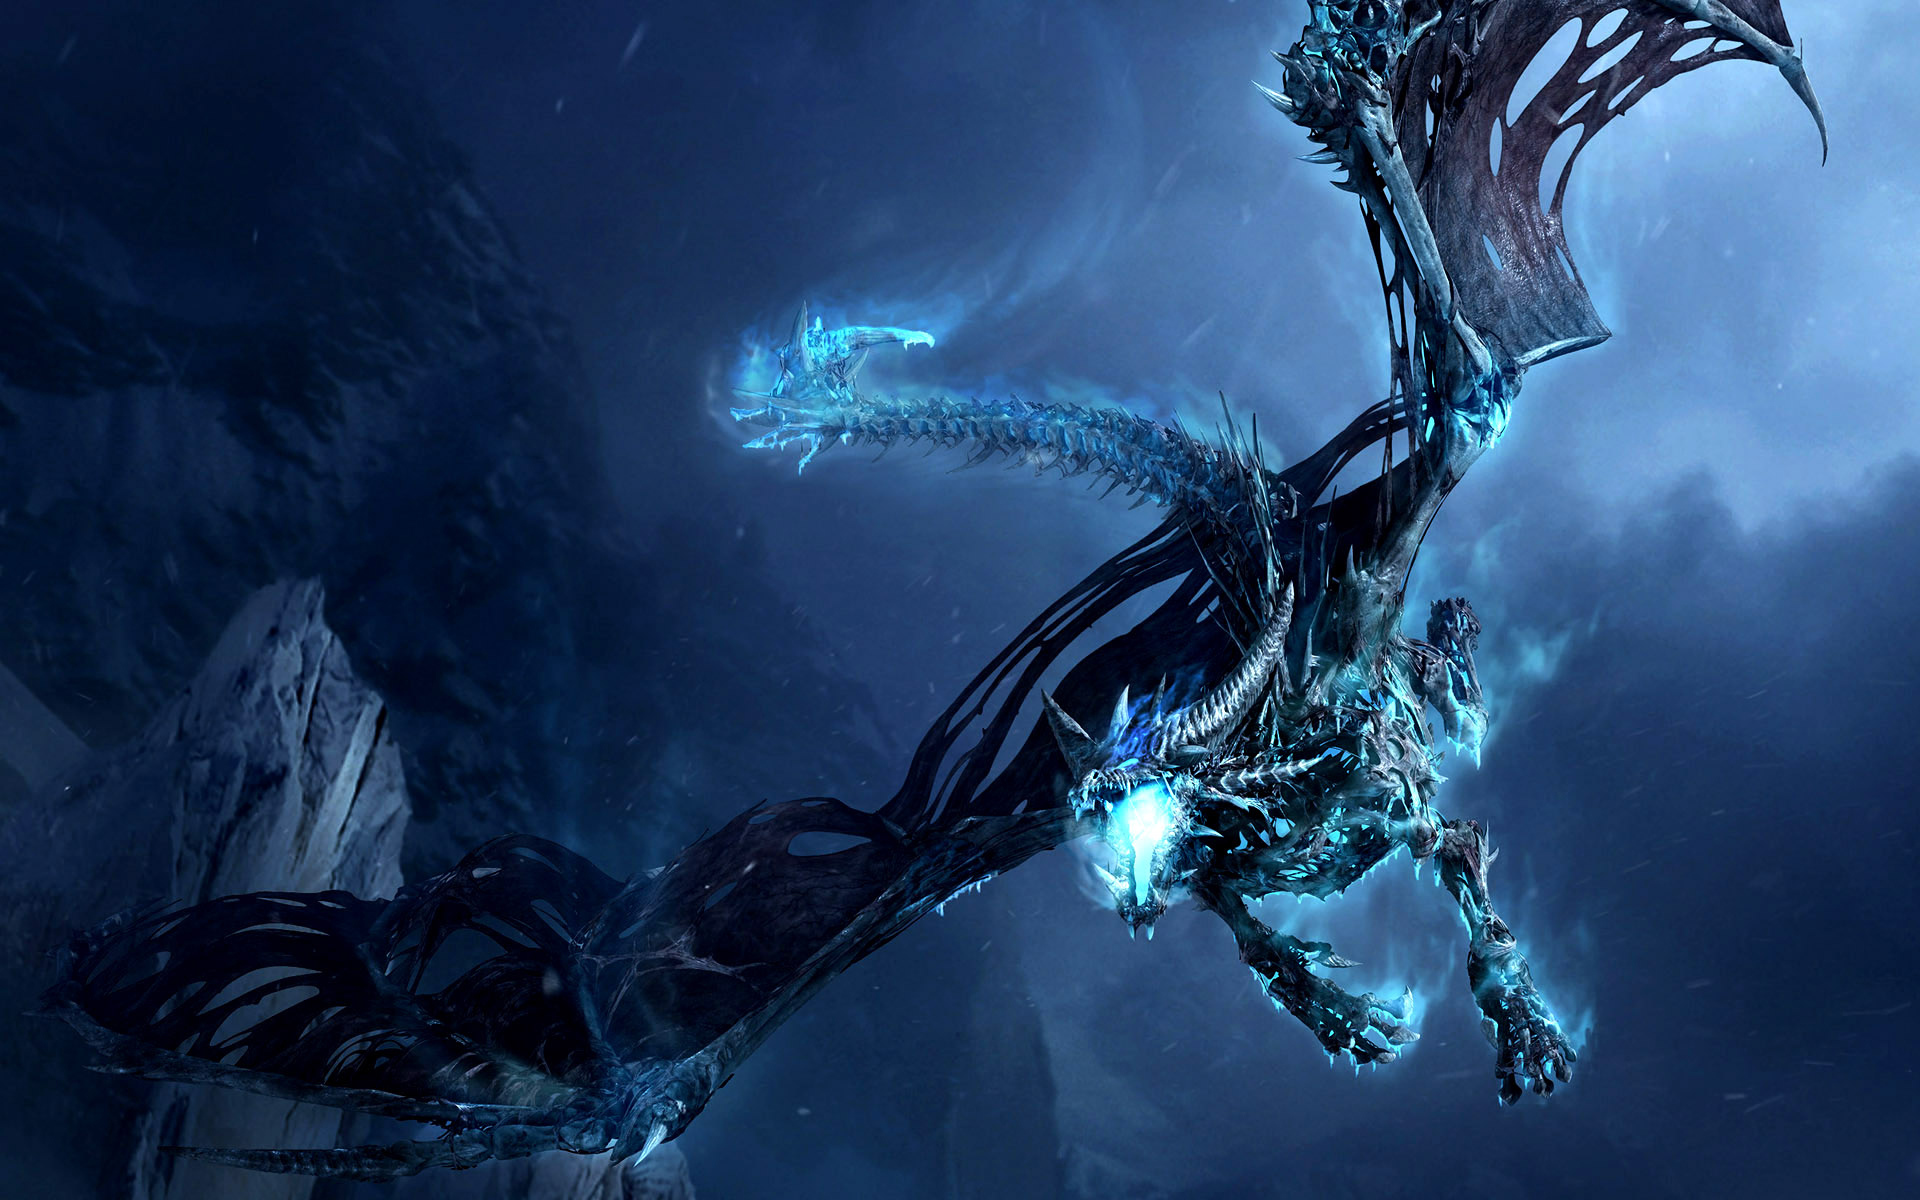 14919 download wallpaper Fantasy, Dragons screensavers and pictures for free